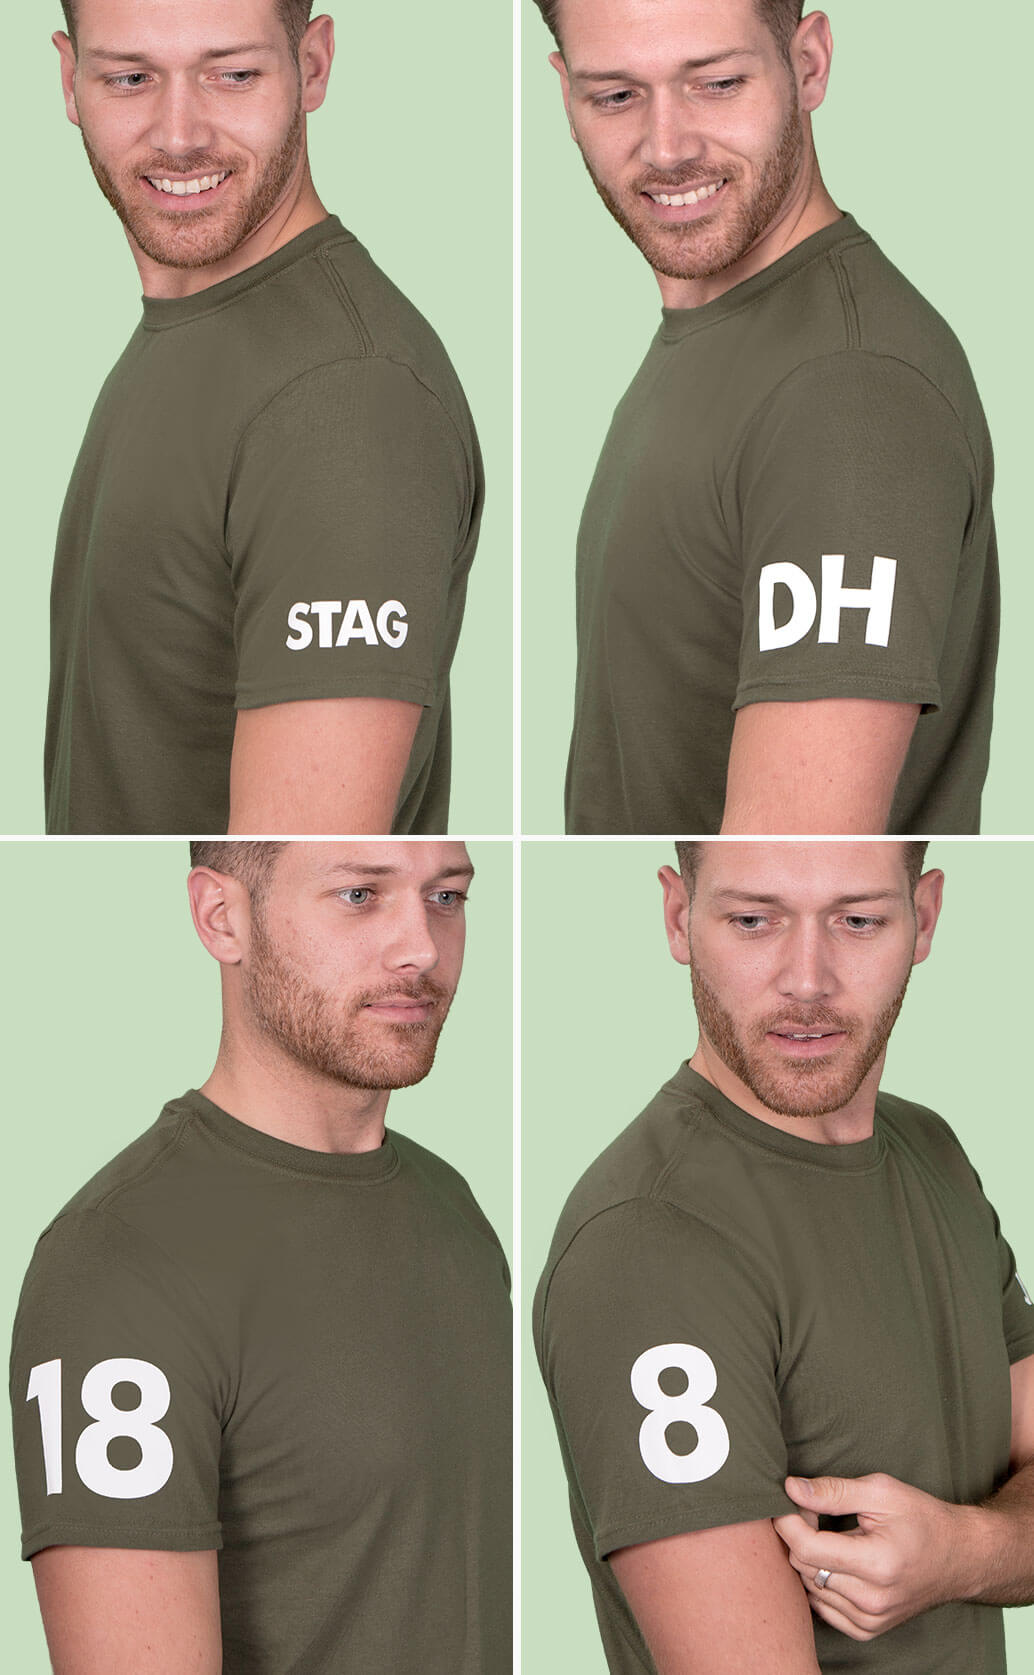 Four medium close-up shots of model in military green t shirt, each displaying different examples of white sleeve prints including a name, number, year and the word 'hen'. Light green background